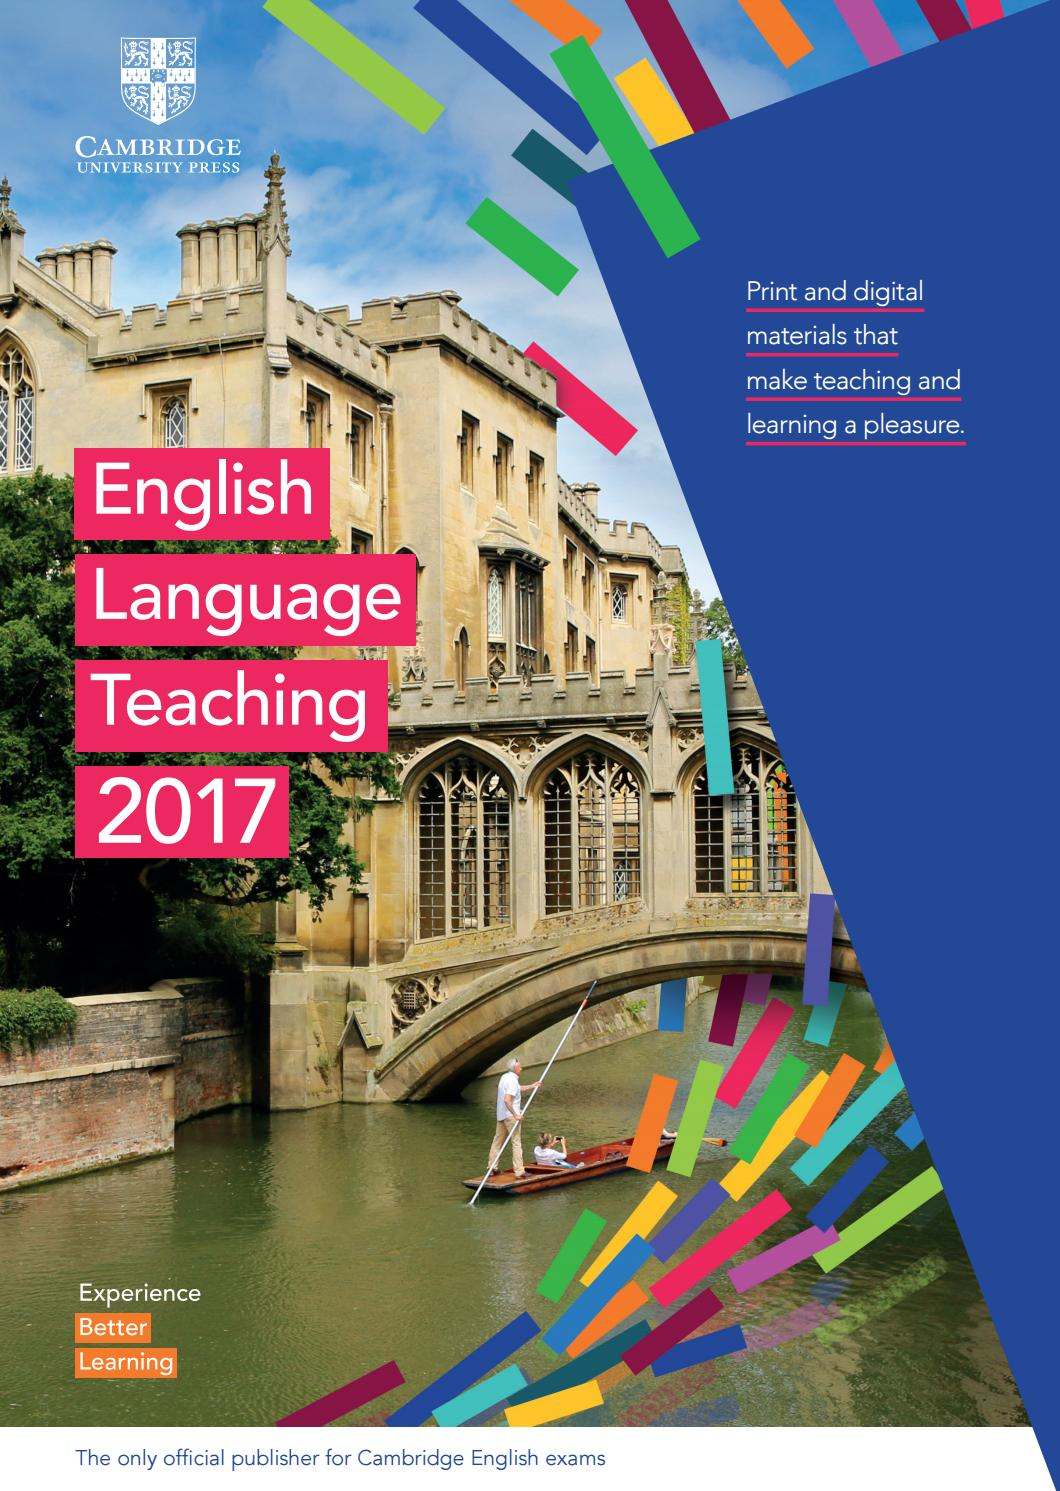 Workbooks tprh verbal workbook : 2017 ELT Cambridge University Press - Portugal Catalogue by ...